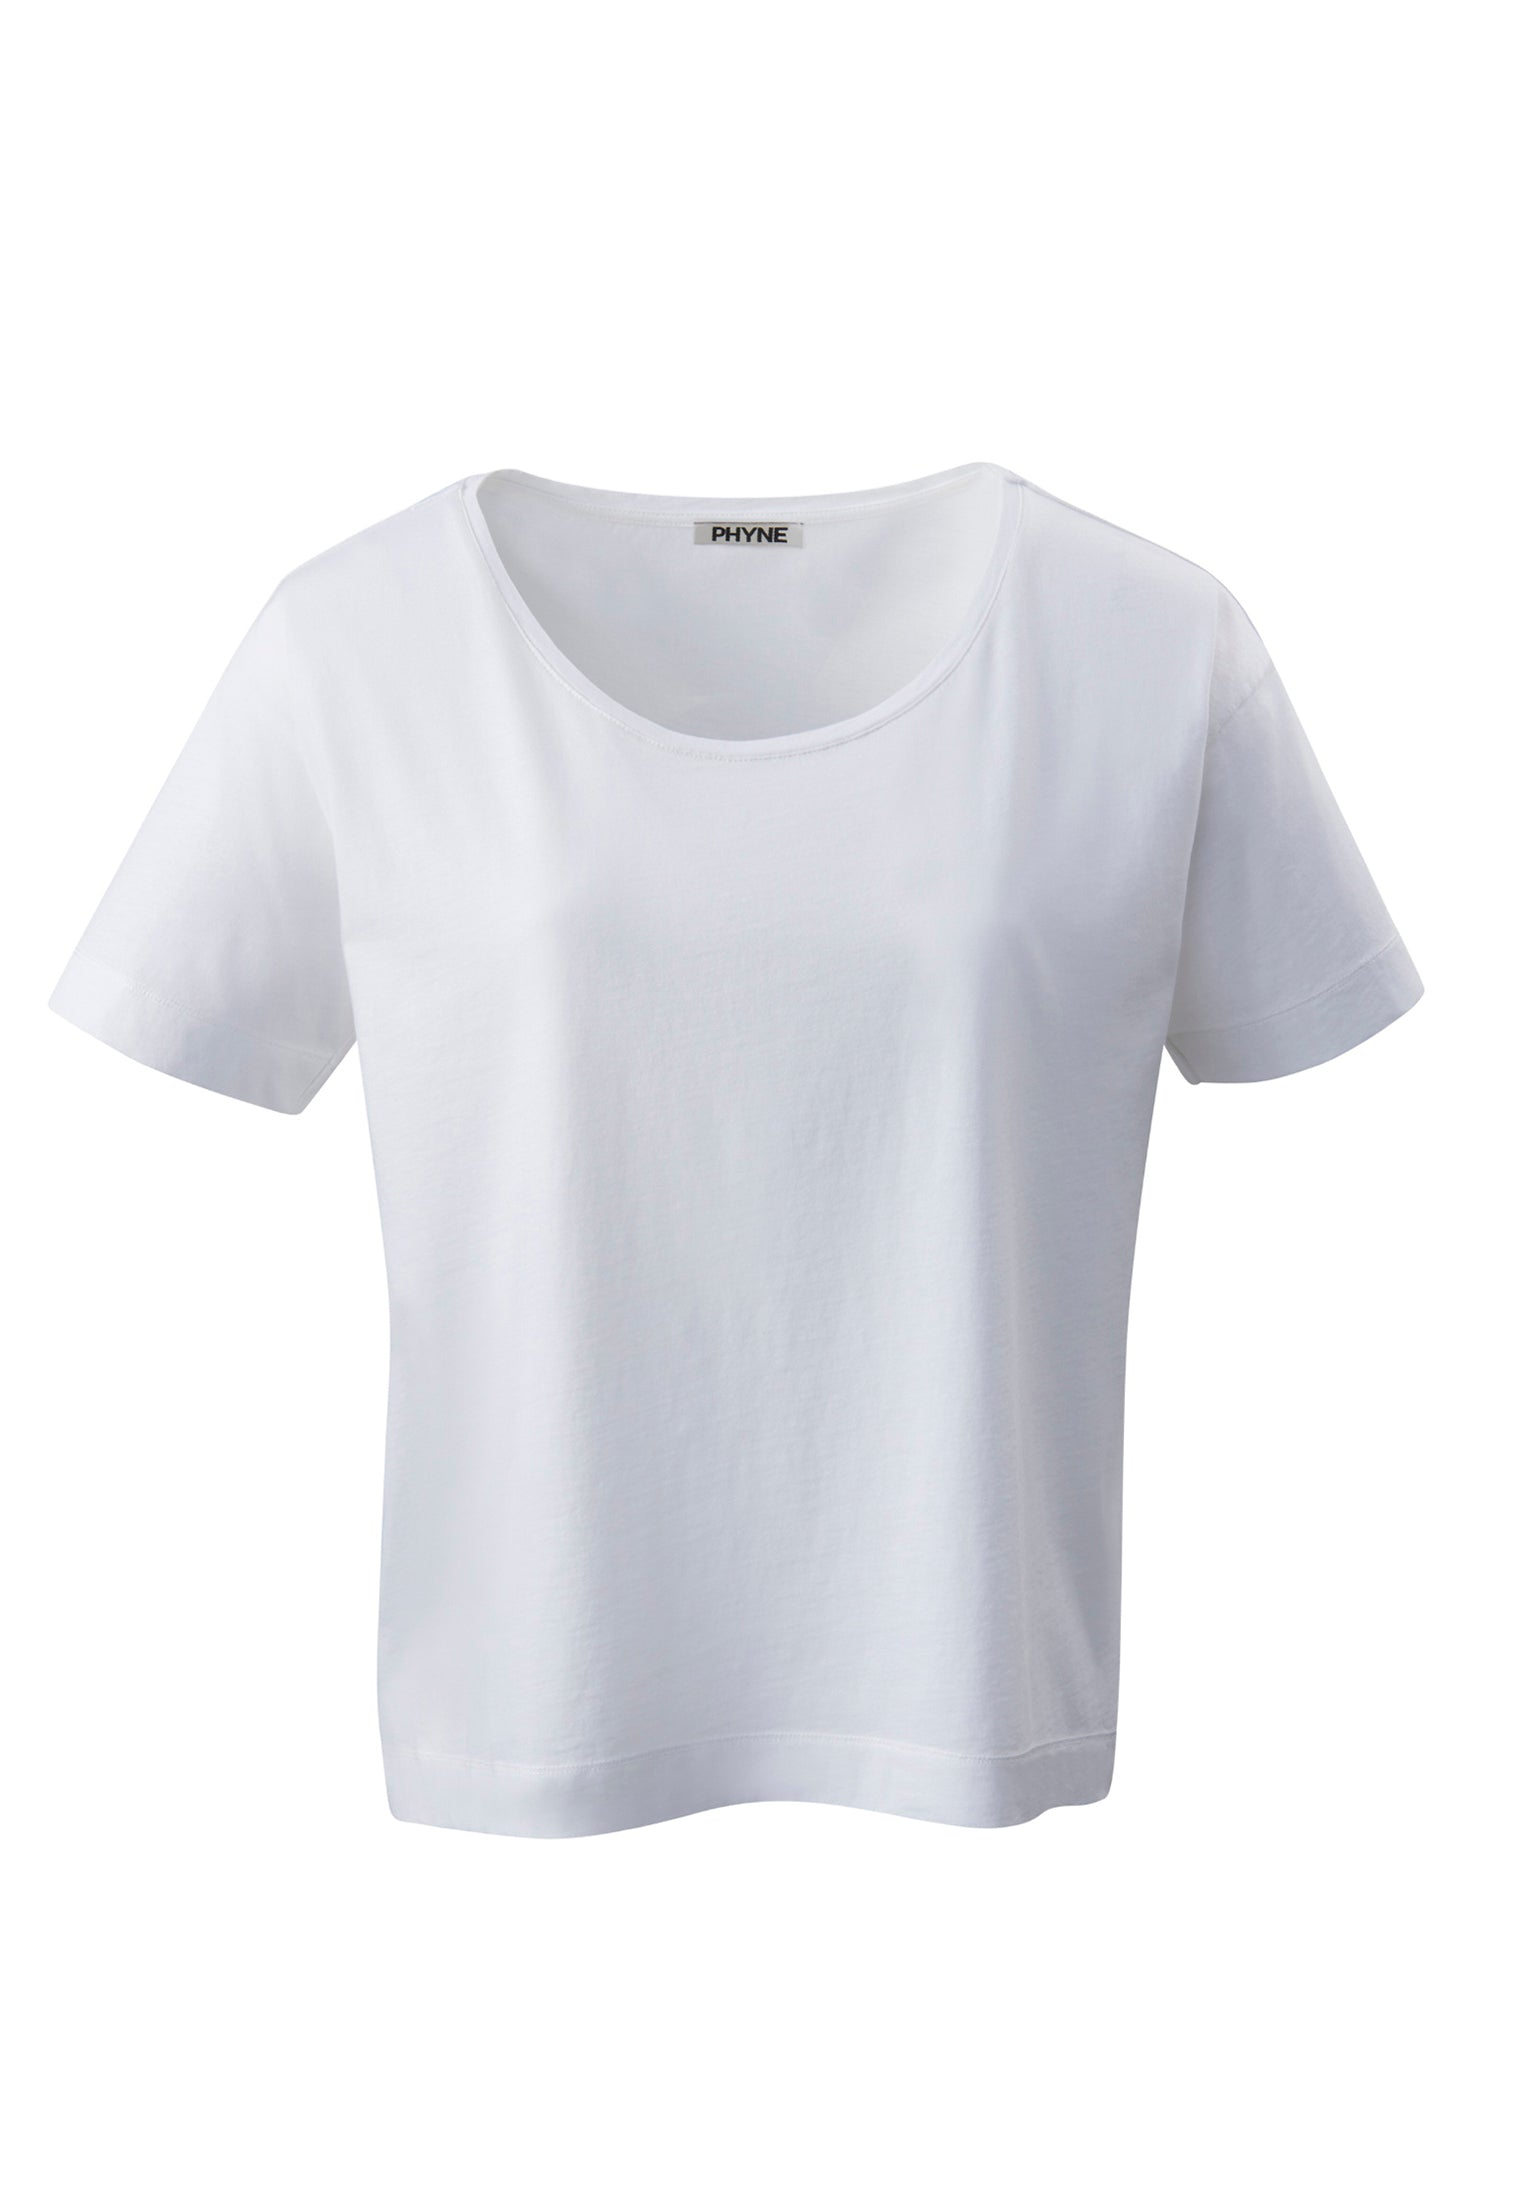 The Boxy T-Shirt White